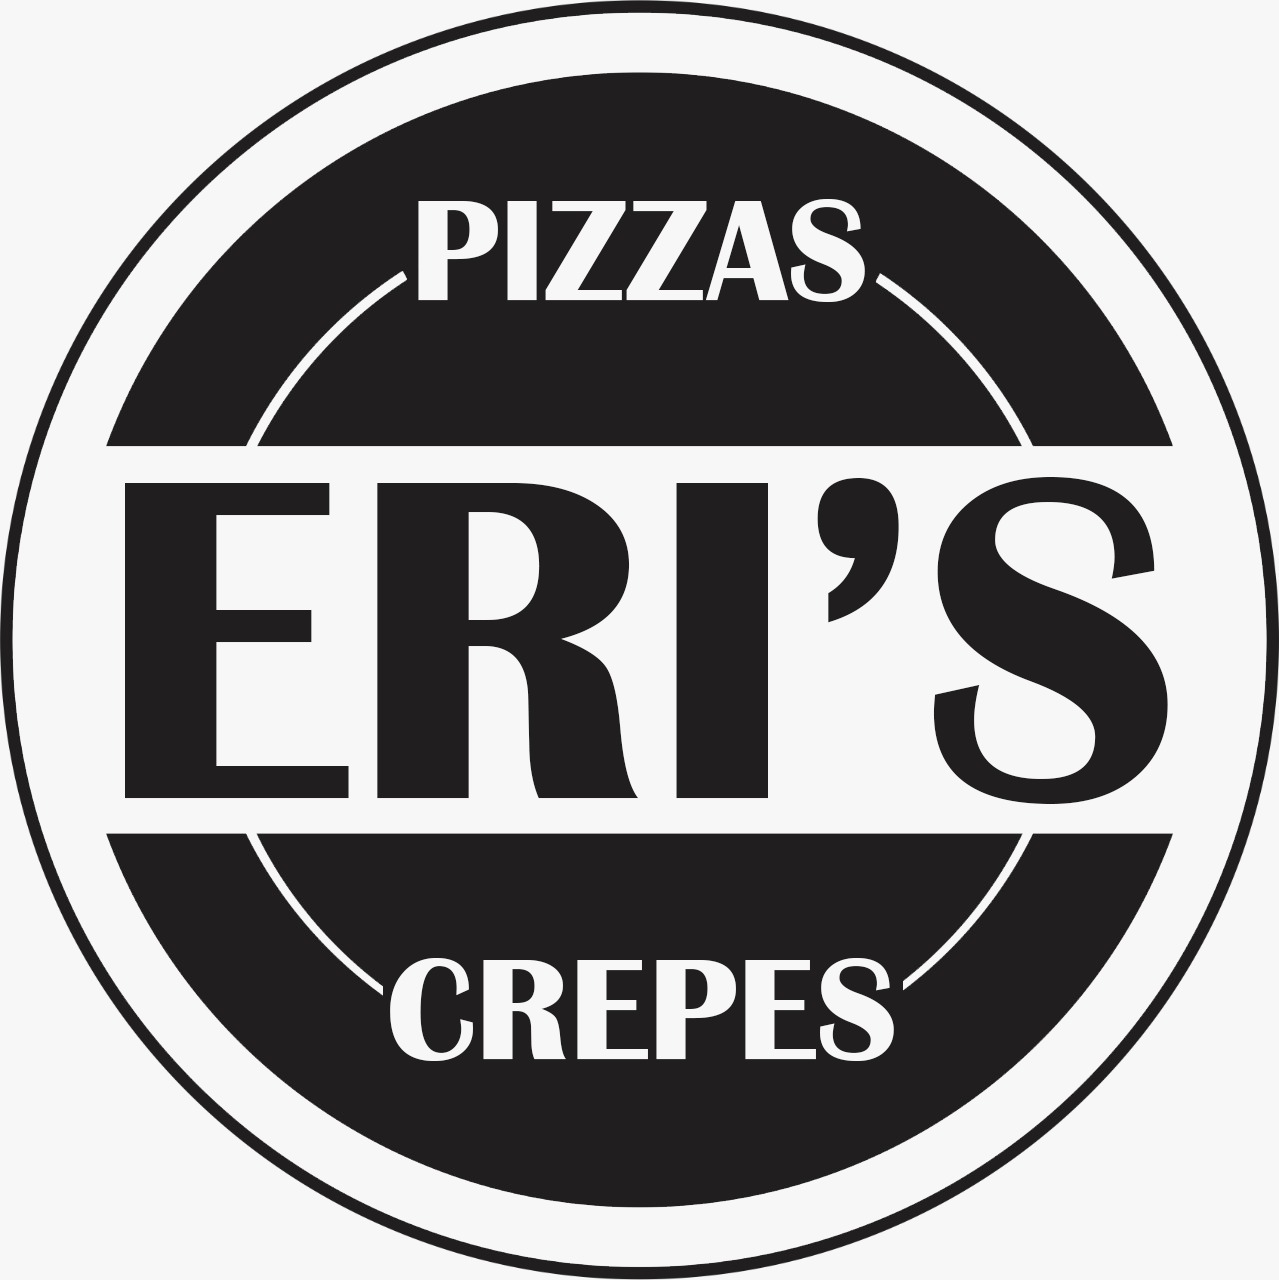 Eri's Pizzas & Crepes